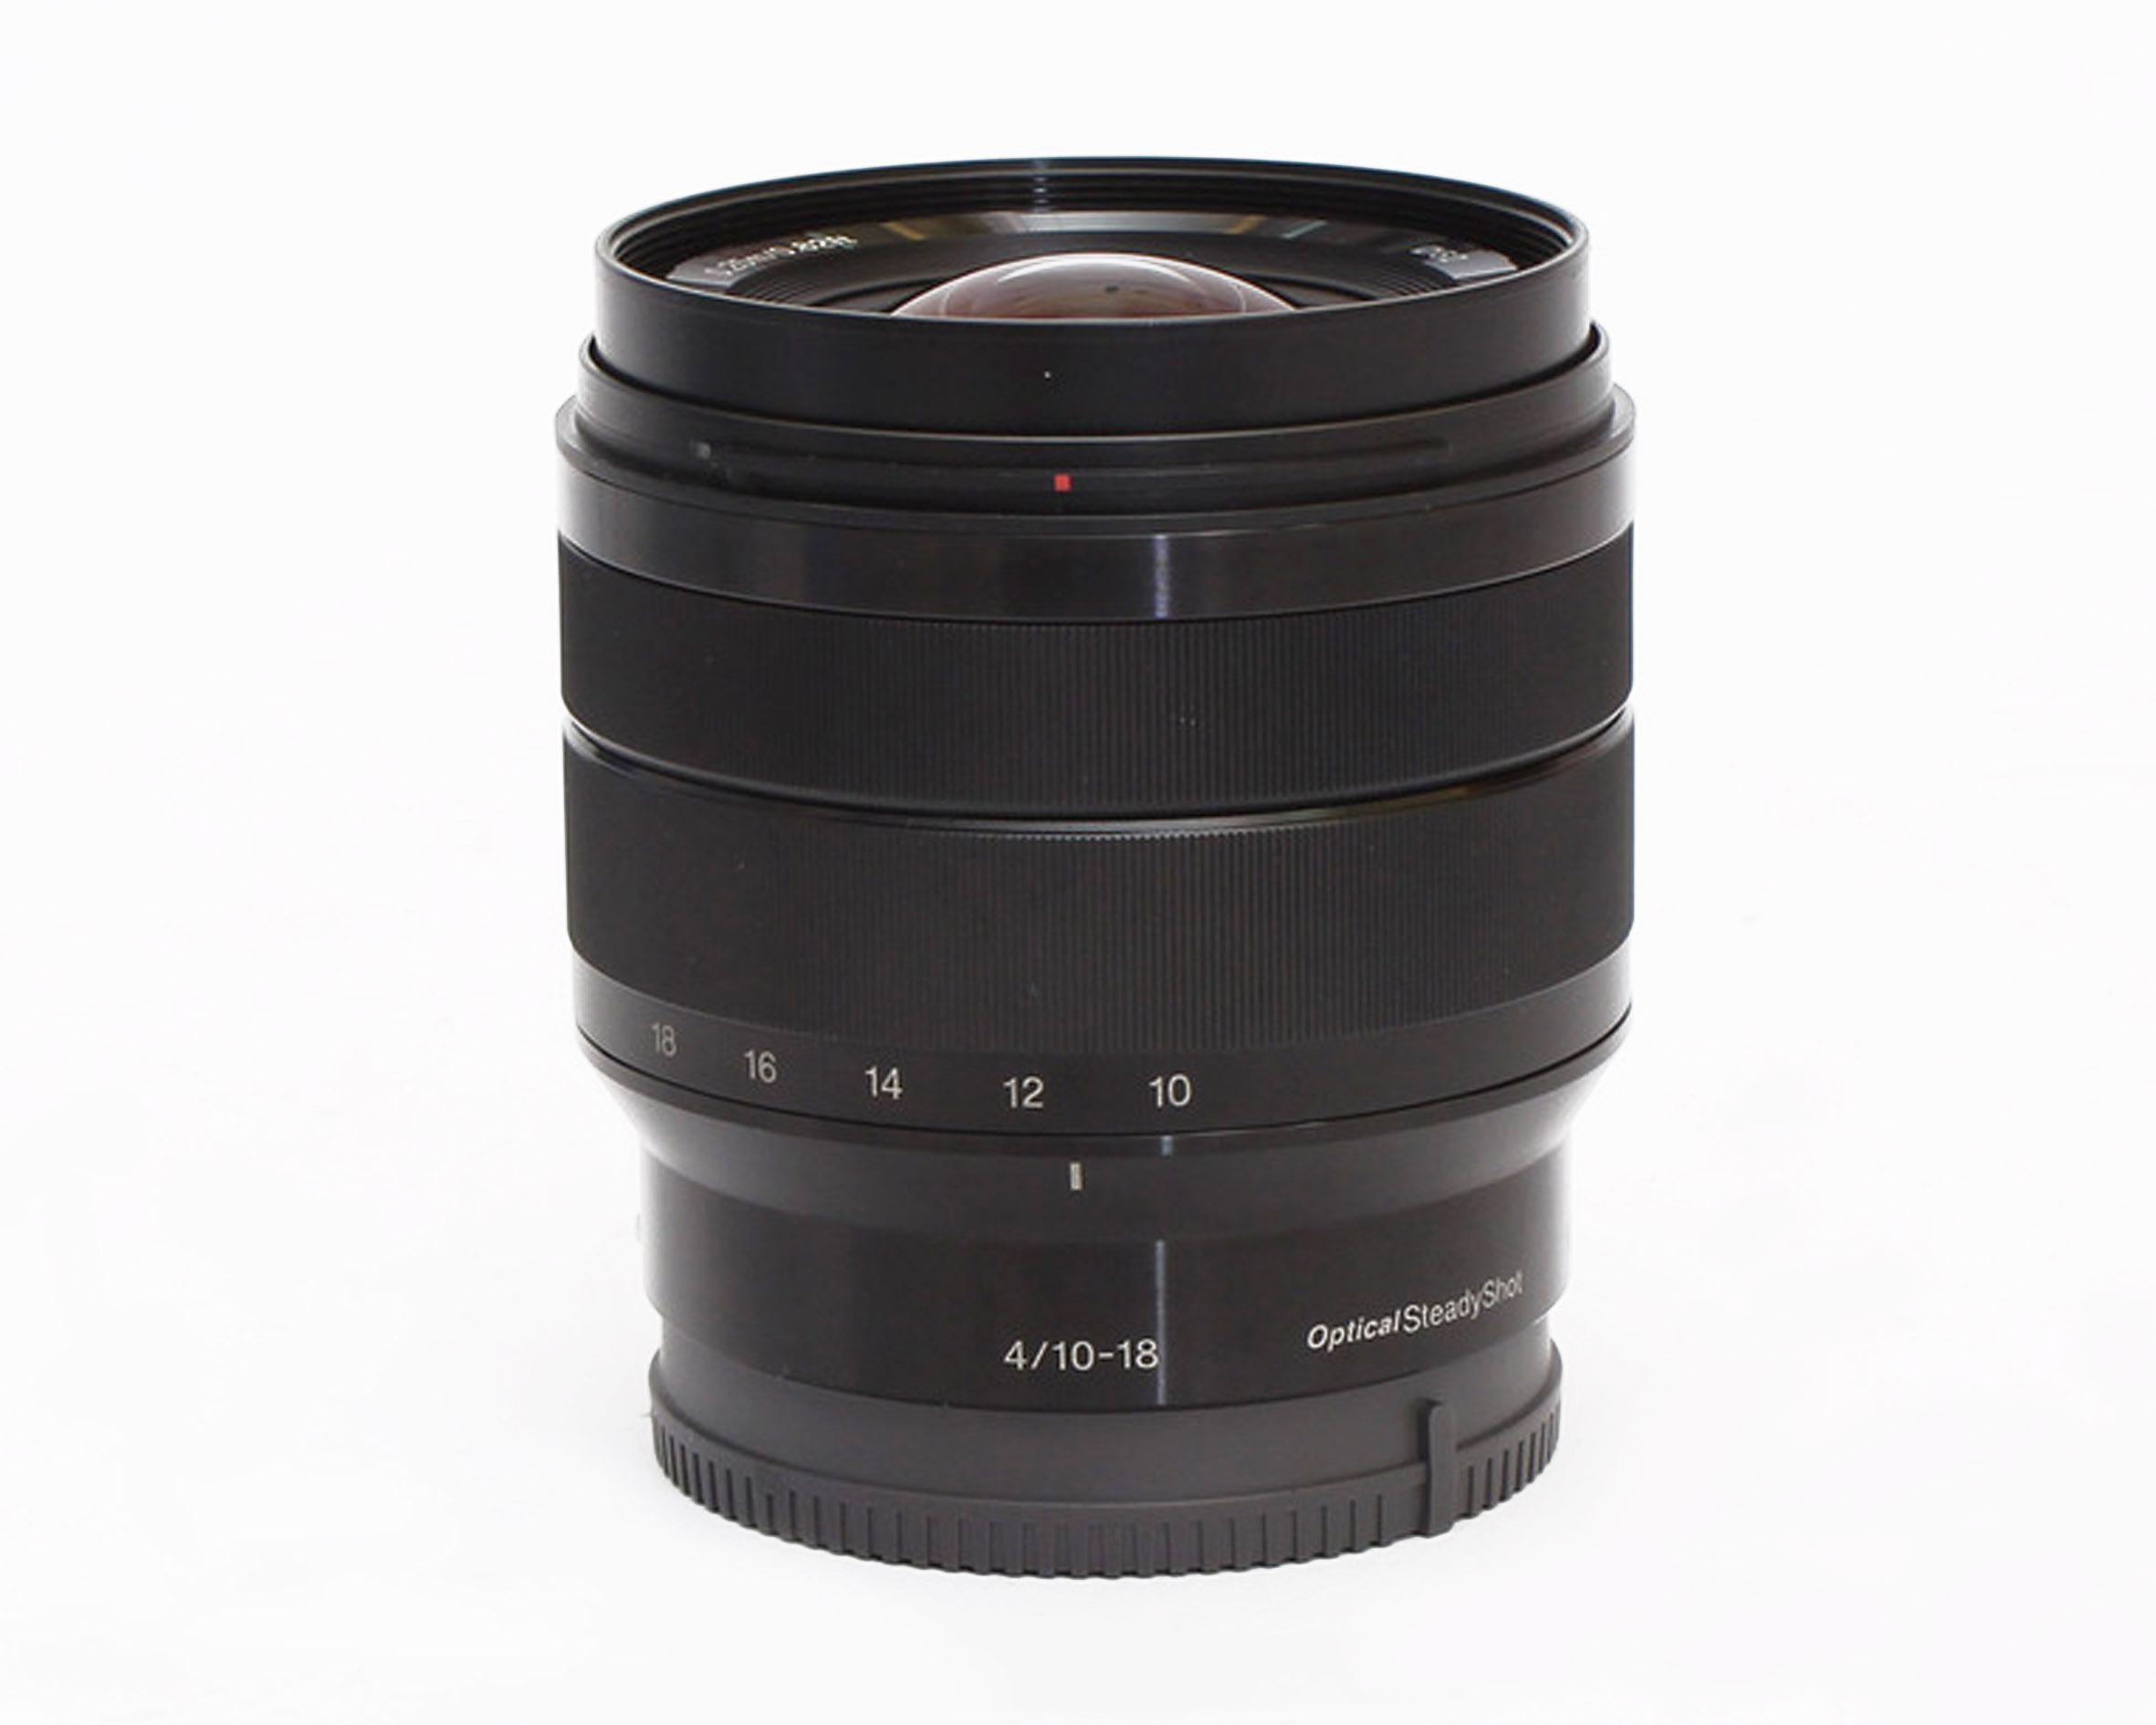 Sony 10-18mm f/4 OSS E mount